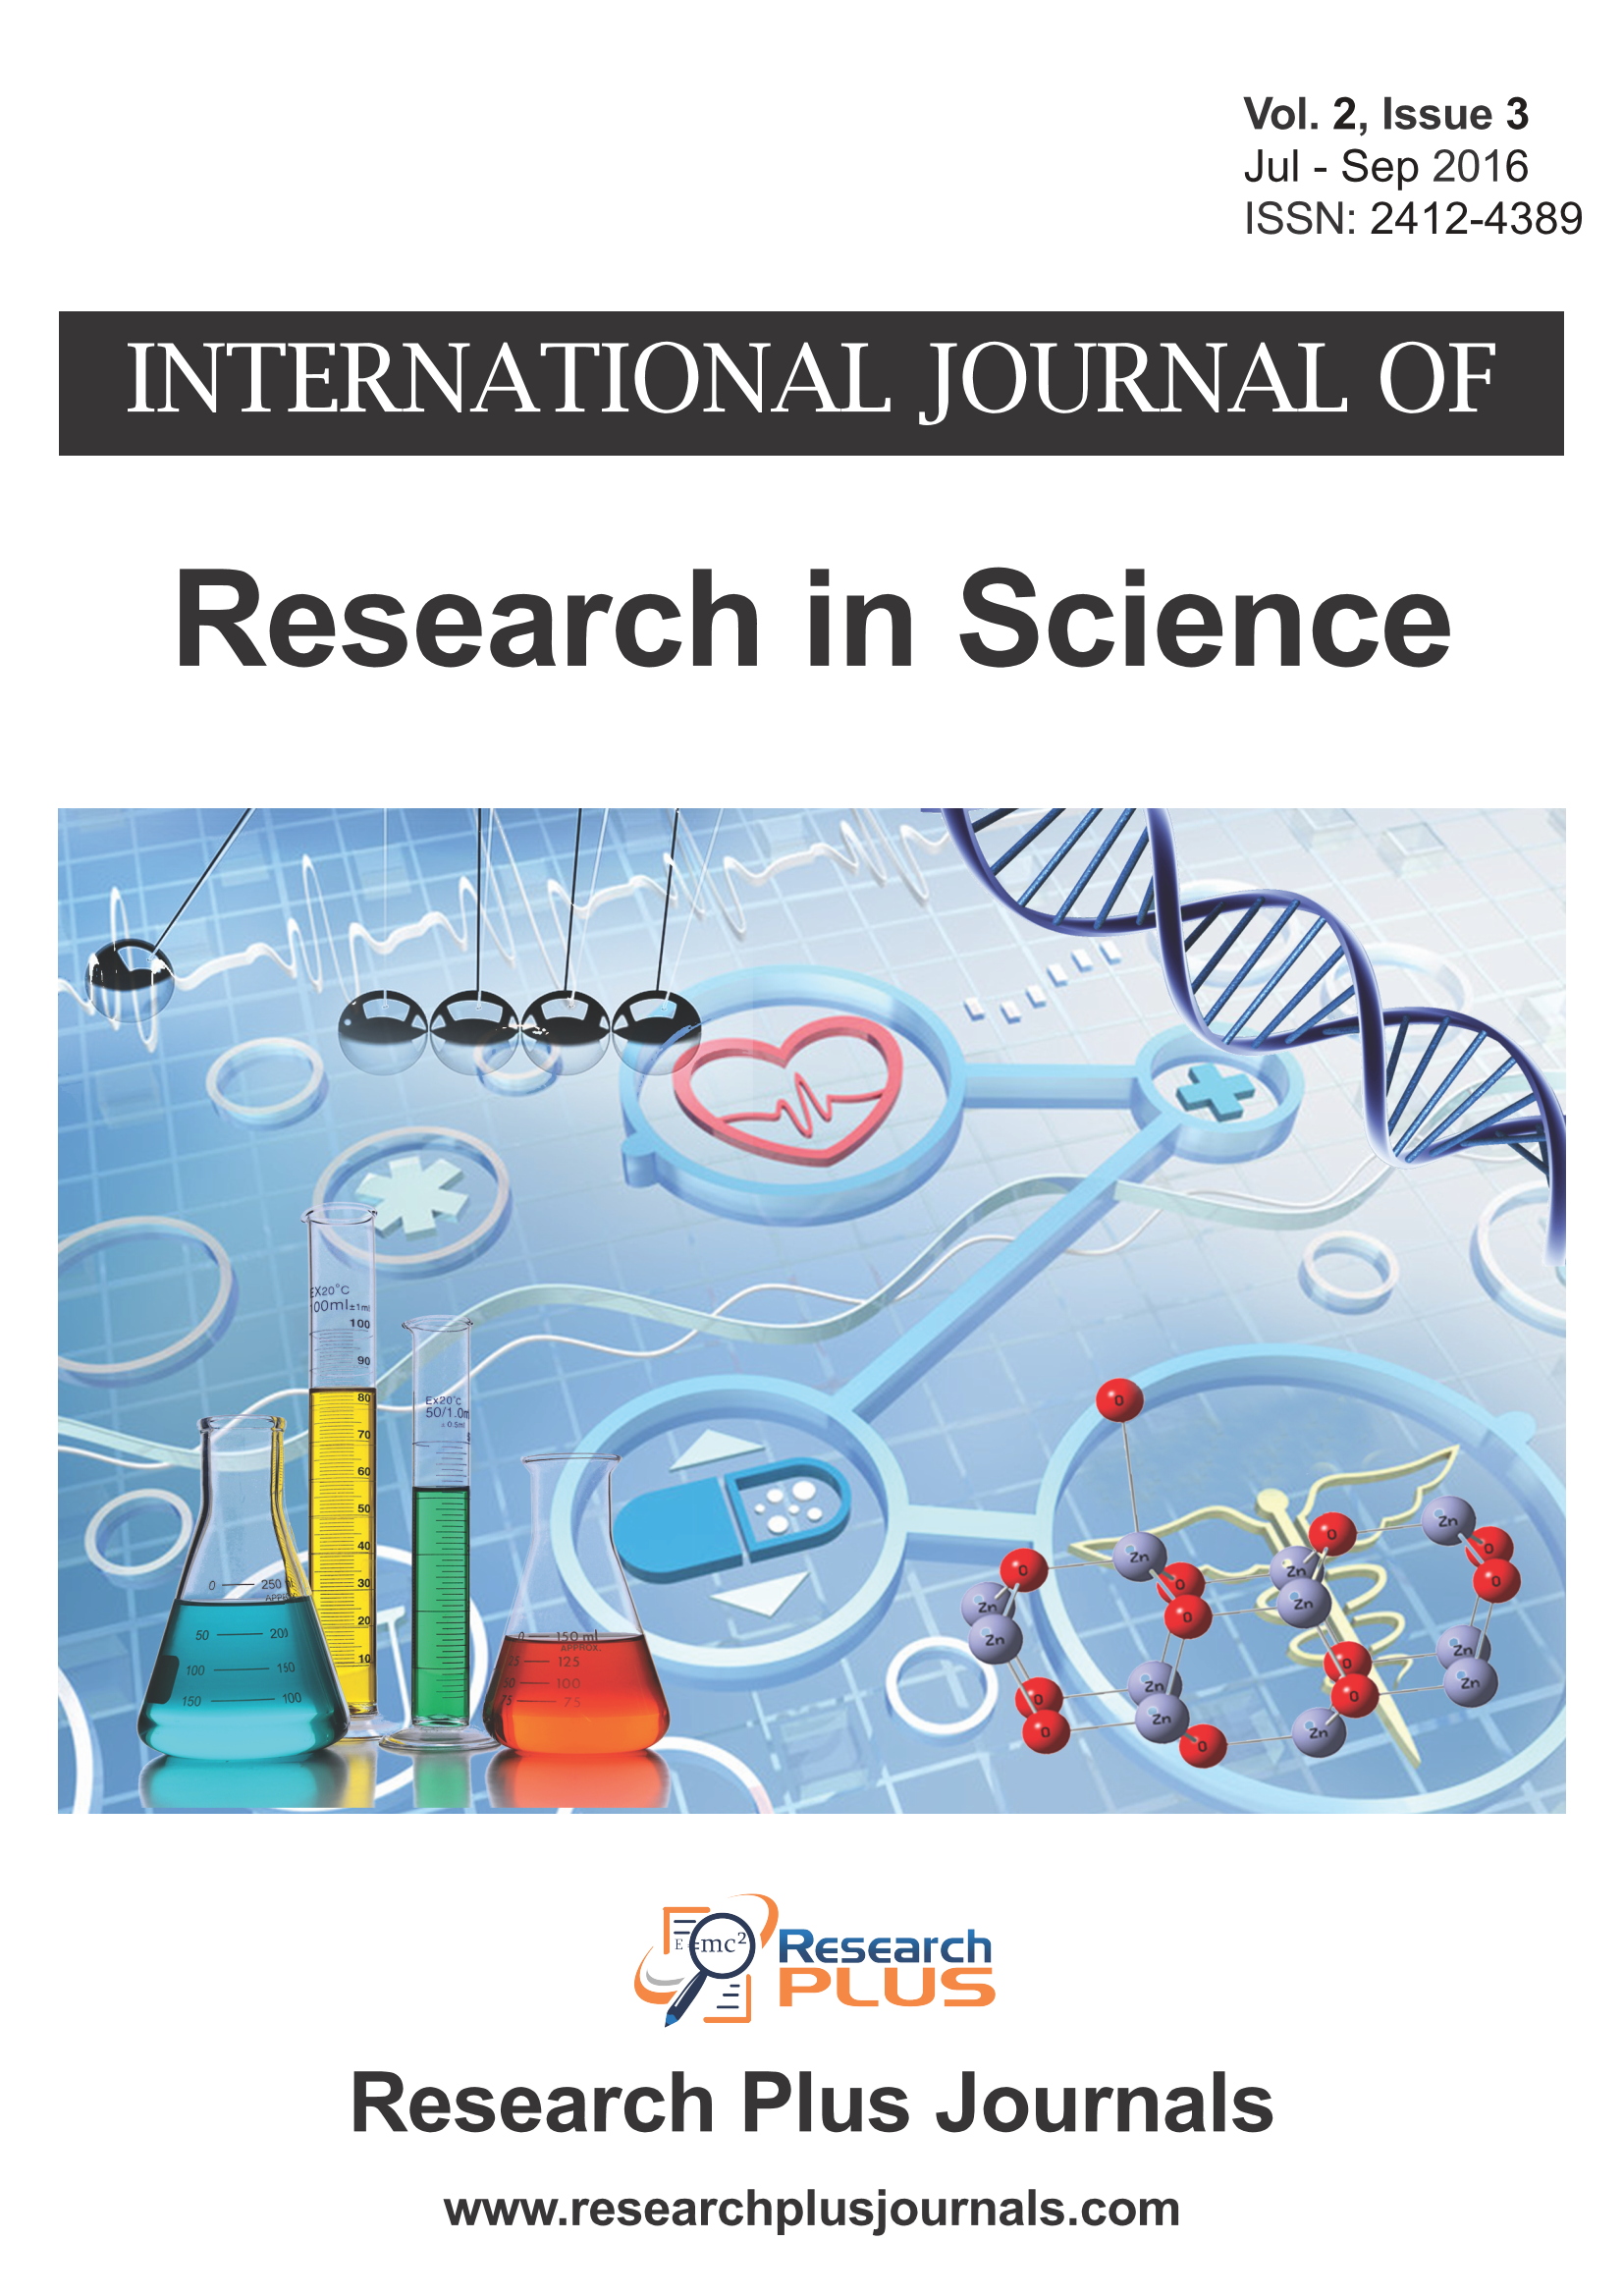 Vol 2 No 3 (2016): International Journal of Research in Science